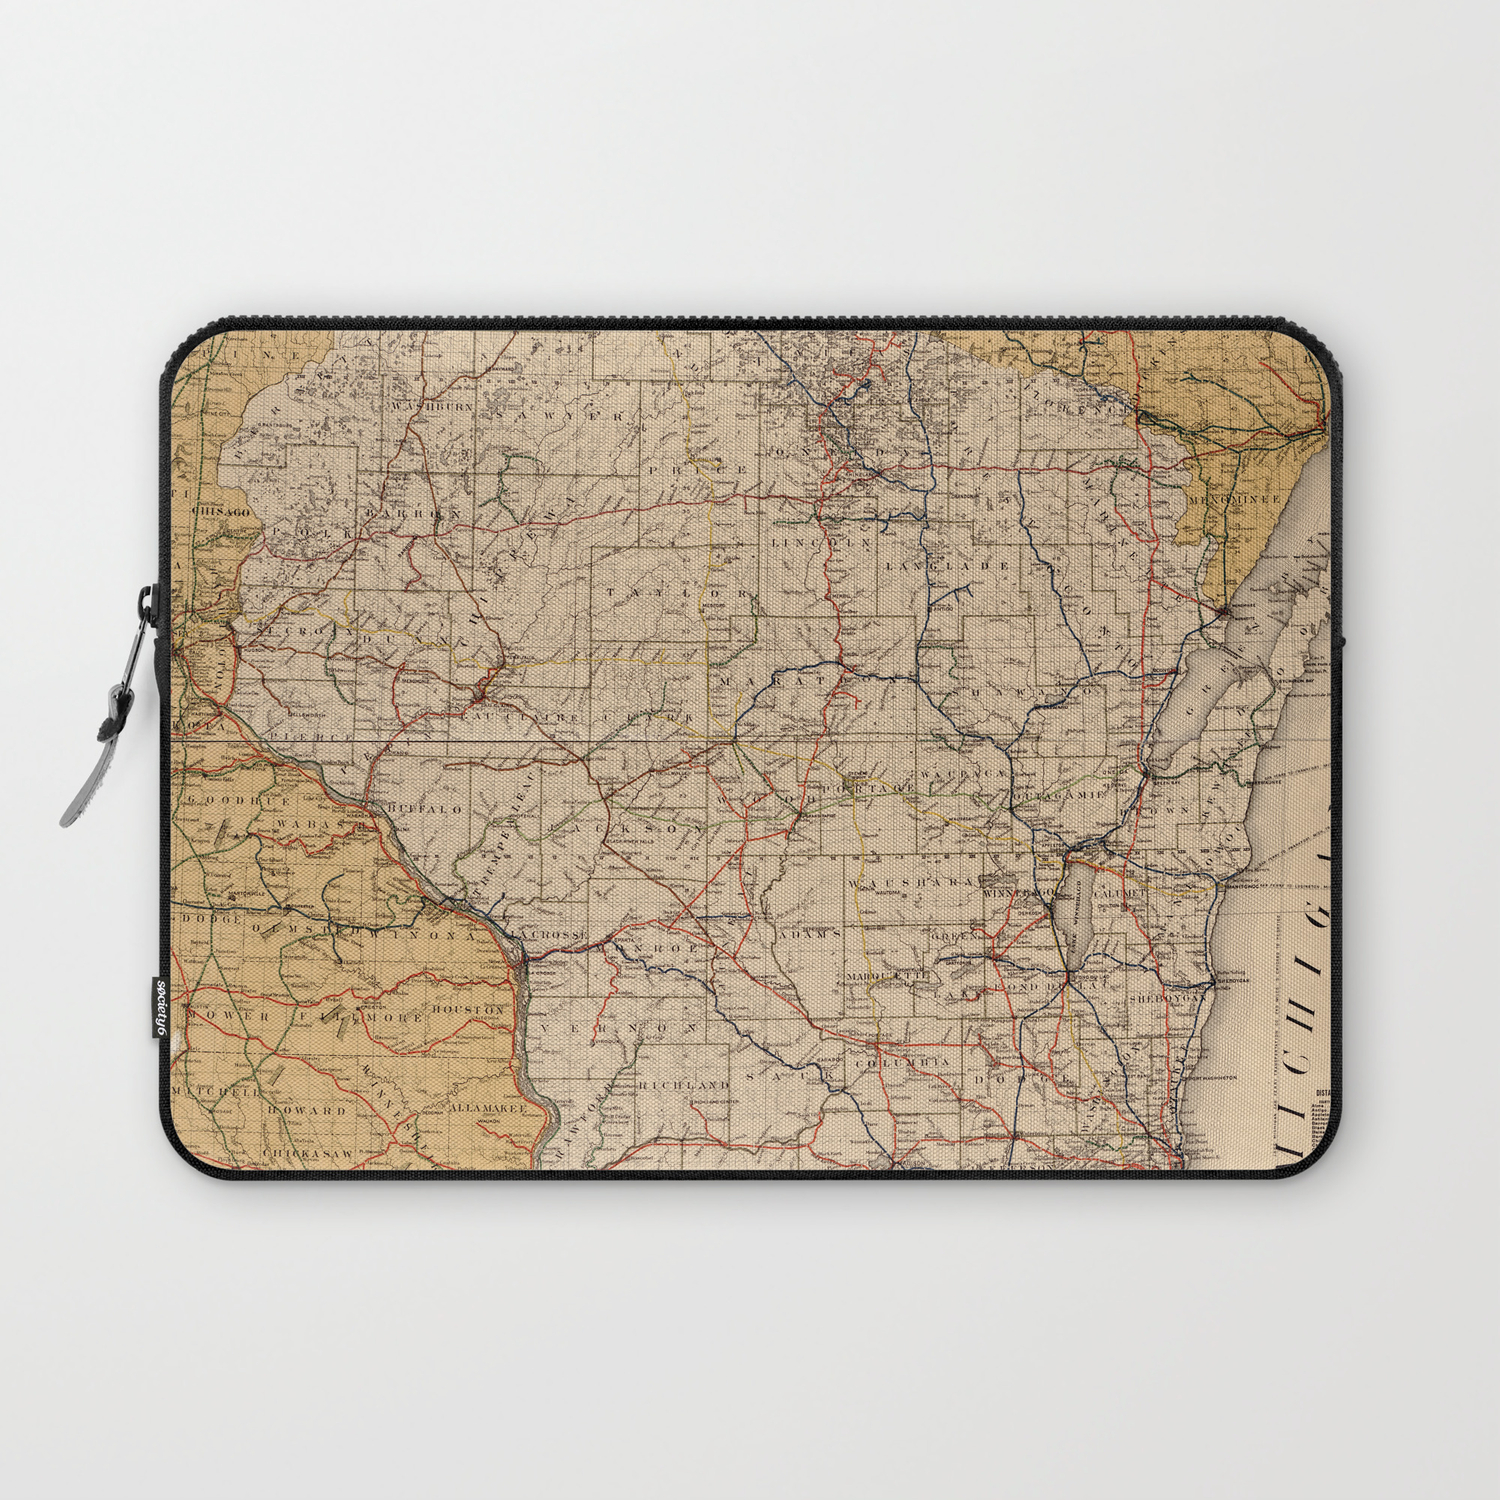 Vintage Wisconsin Railroad Map (1900) Laptop Sleeve on map of uranus, map of cold mountain, map of jfk, map of luna, map of the great war, map of brazil, map of greed, map of italy, map of police, map of iran, map of new york, new york, map of barbara, map of 49th parallel, map of life is beautiful, map of wolf, map of gettysburg, map of apocalypse now, map of network, map of zulu,